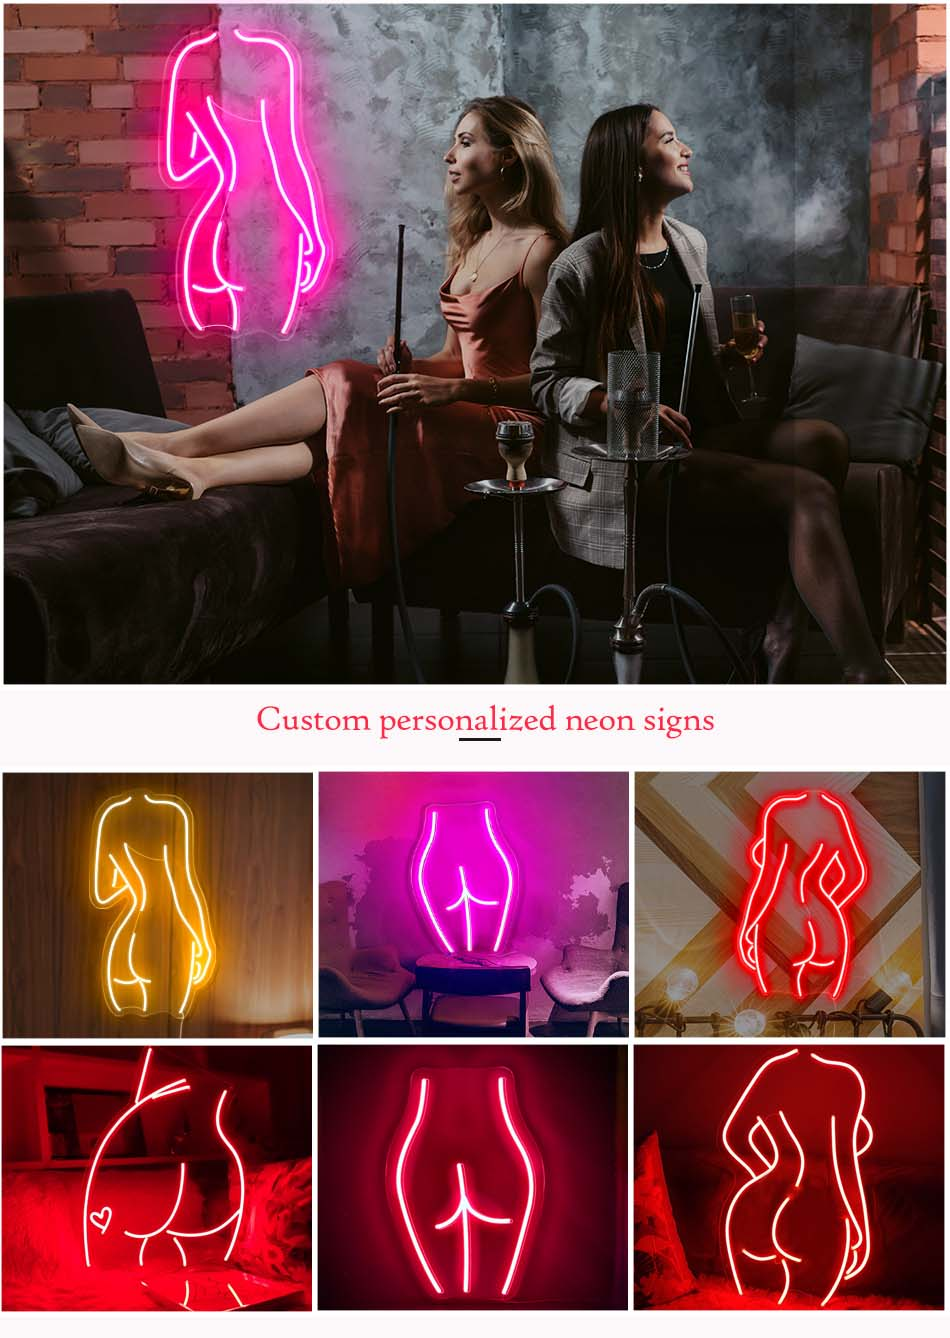 Nude neon signs